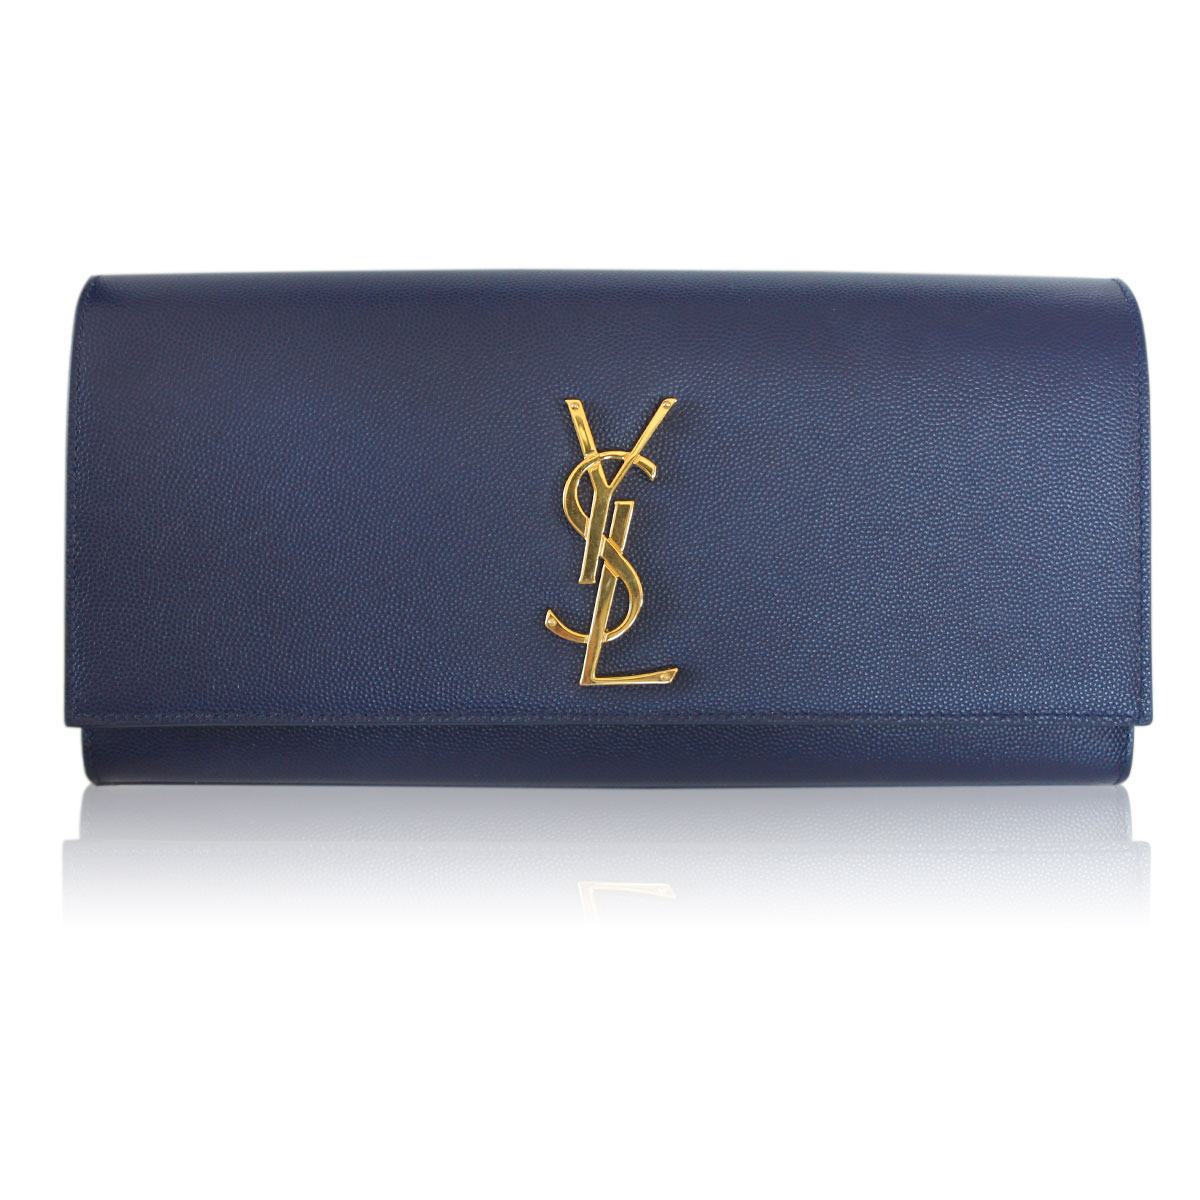 f1799e36d9c9 Saint Laurent YSL Sac Cassandre Navy Blue Leather Clutch GHW in Dust Bag